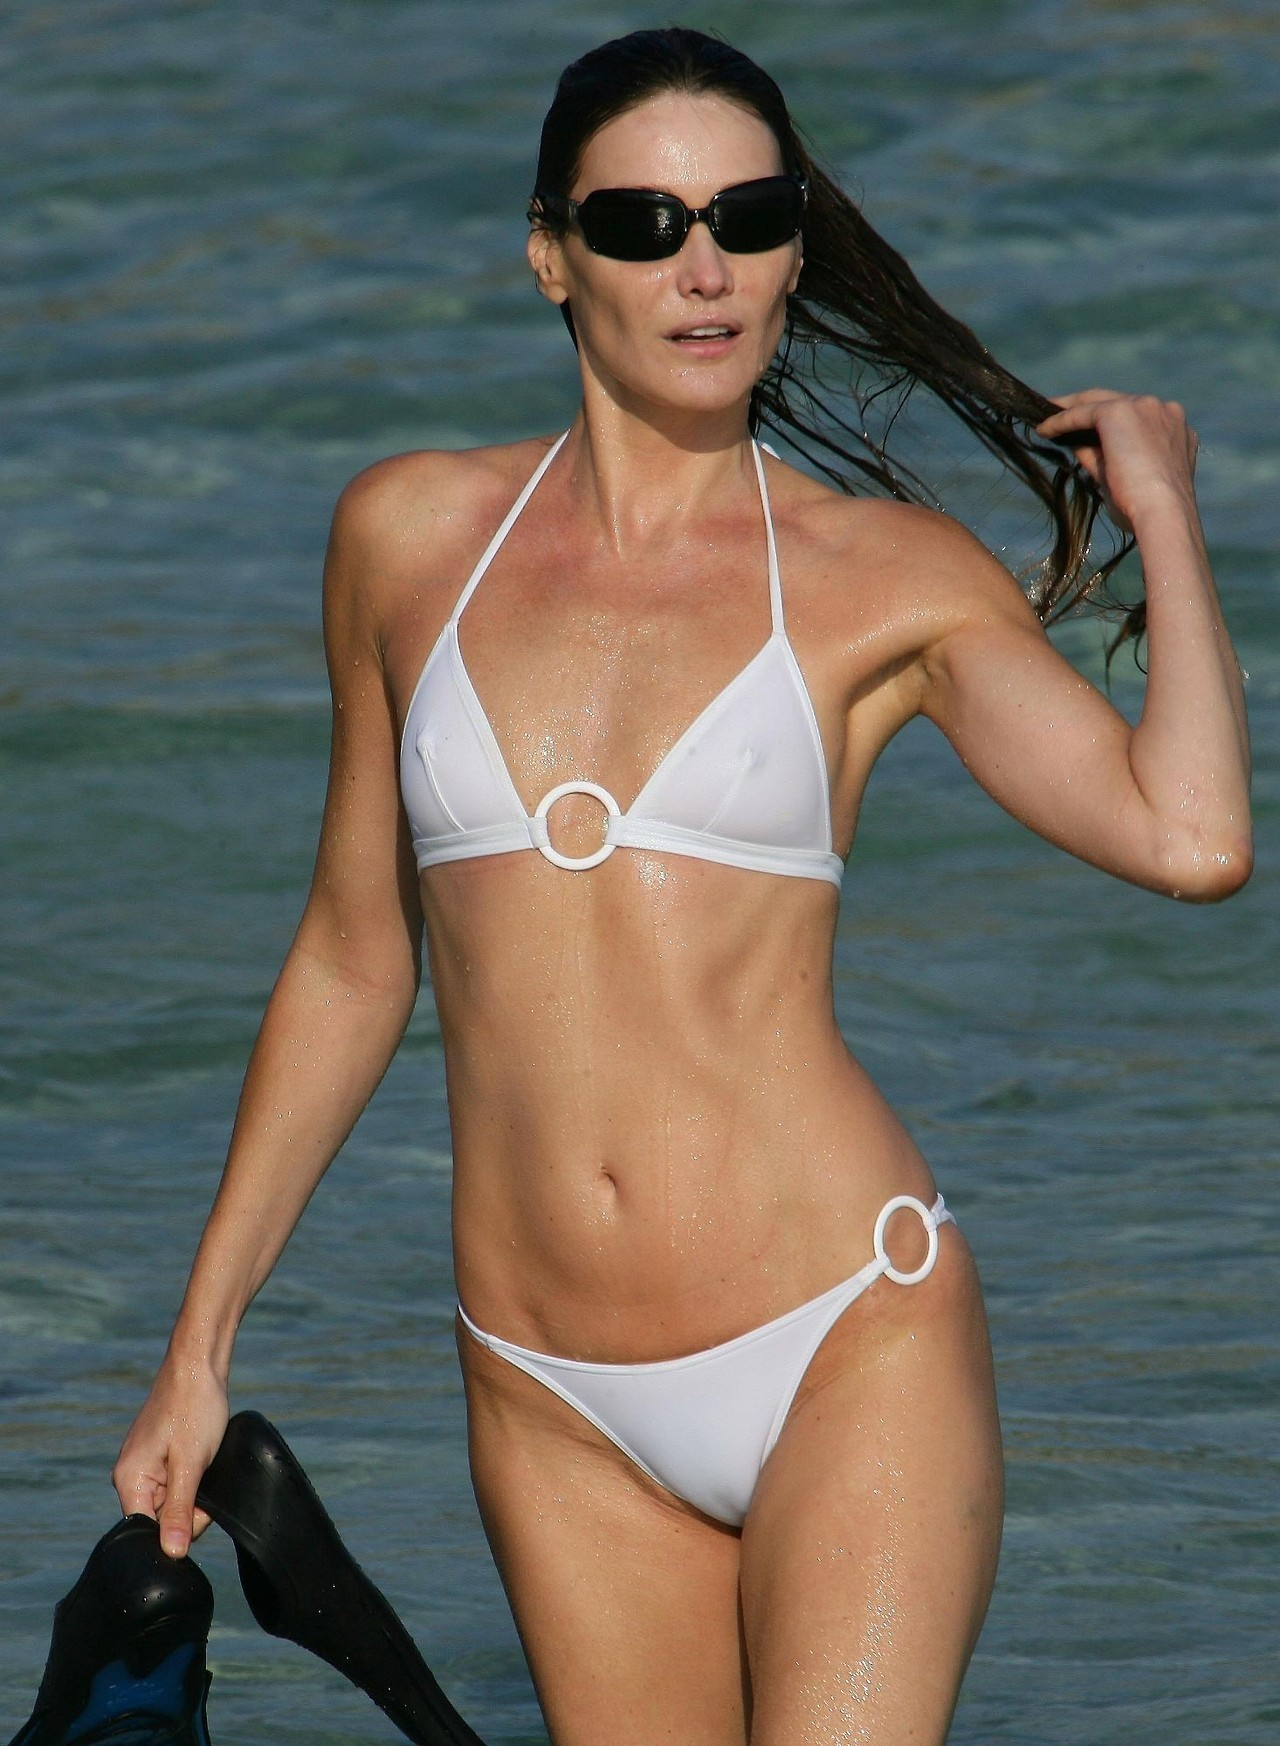 fit slim milf in see through bikini unaware